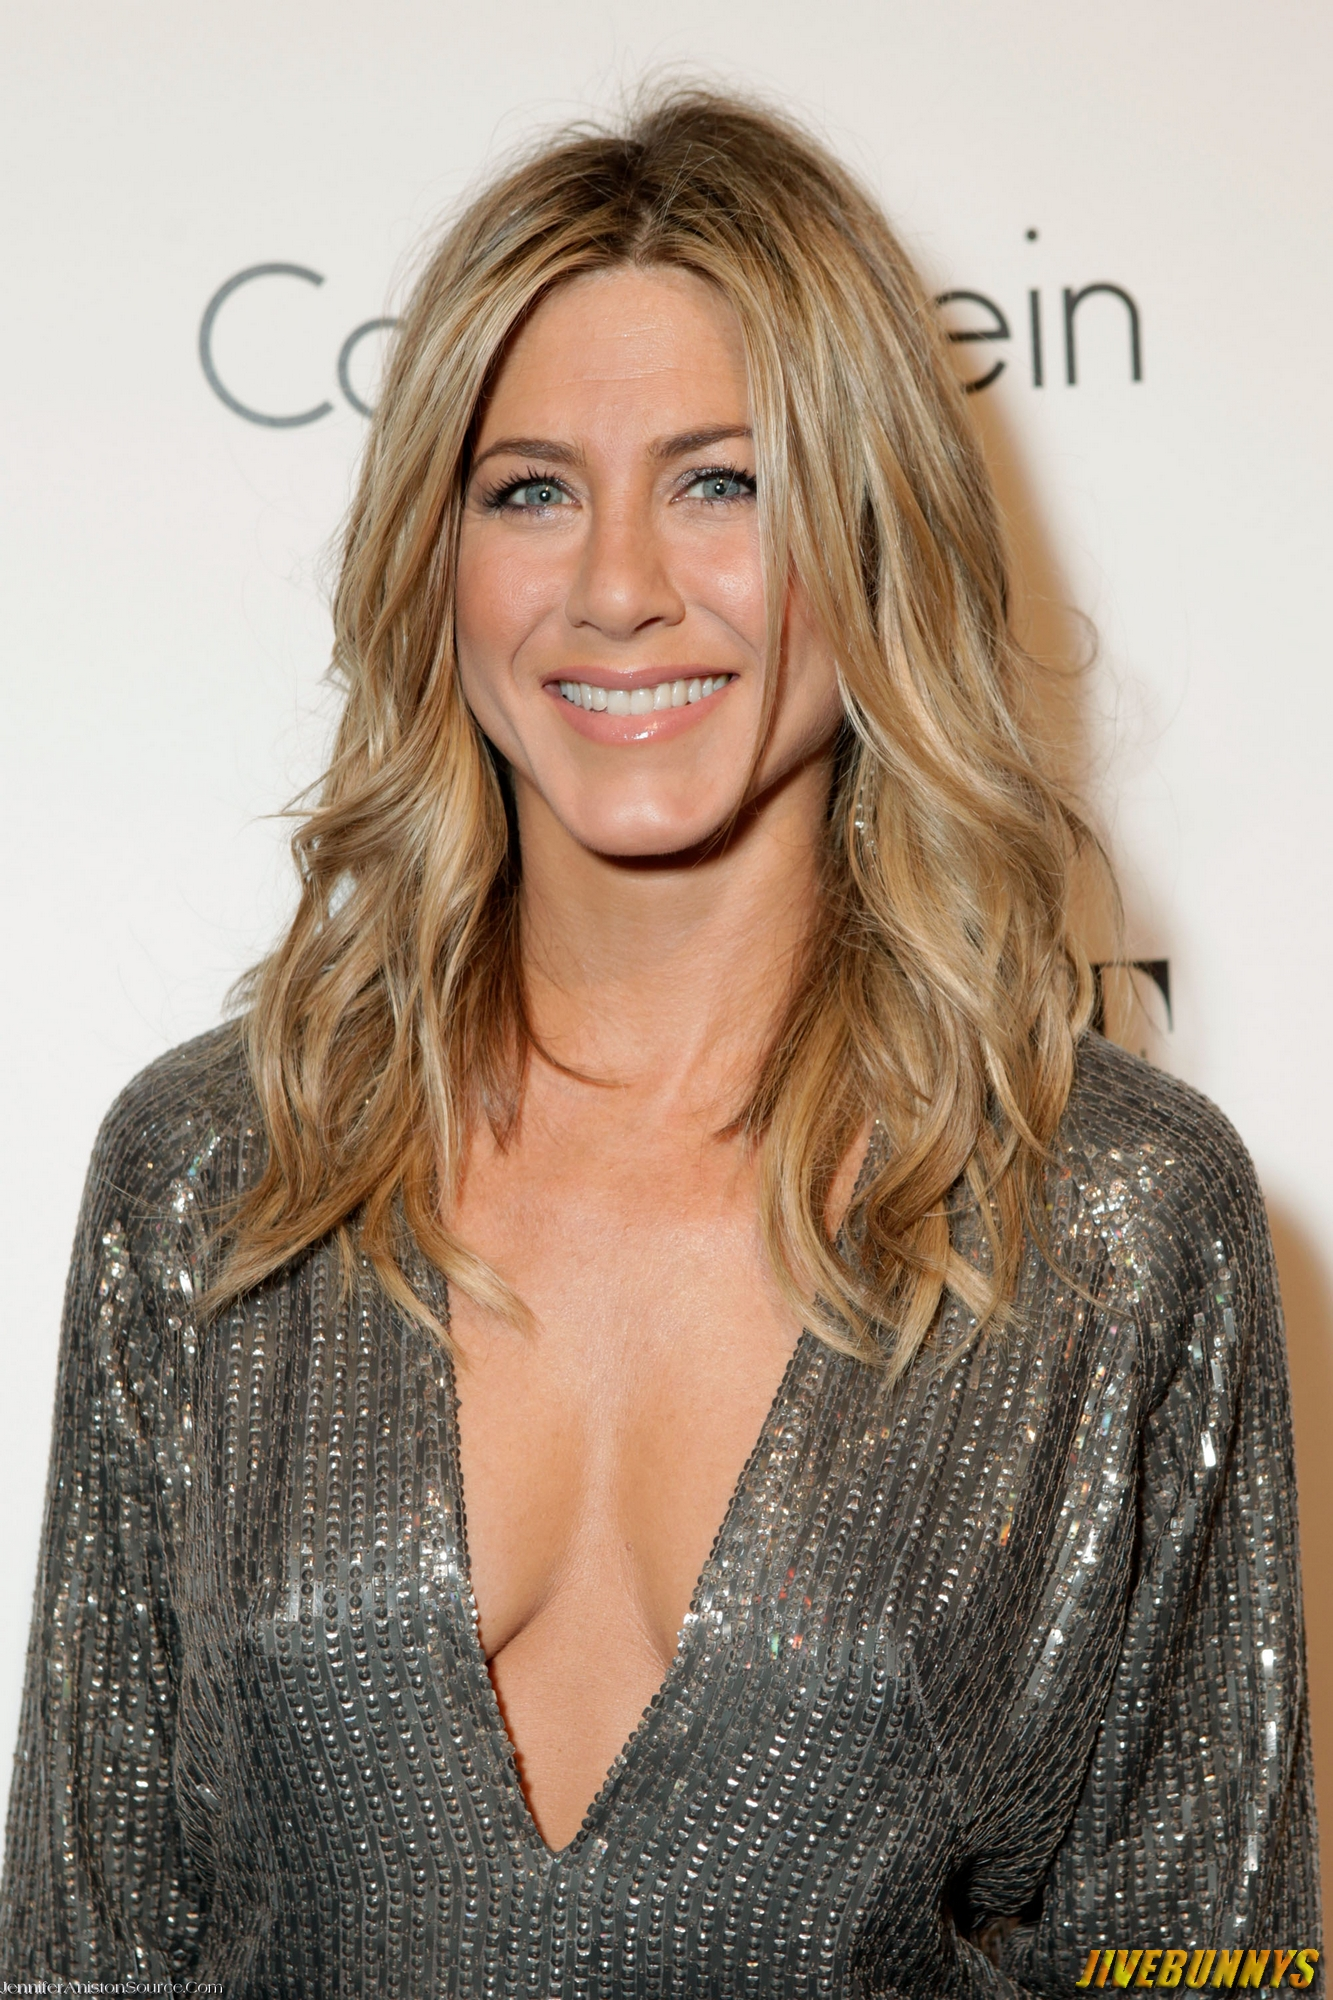 Jennifer Aniston Special Pictures 25  Film Actresses-5139